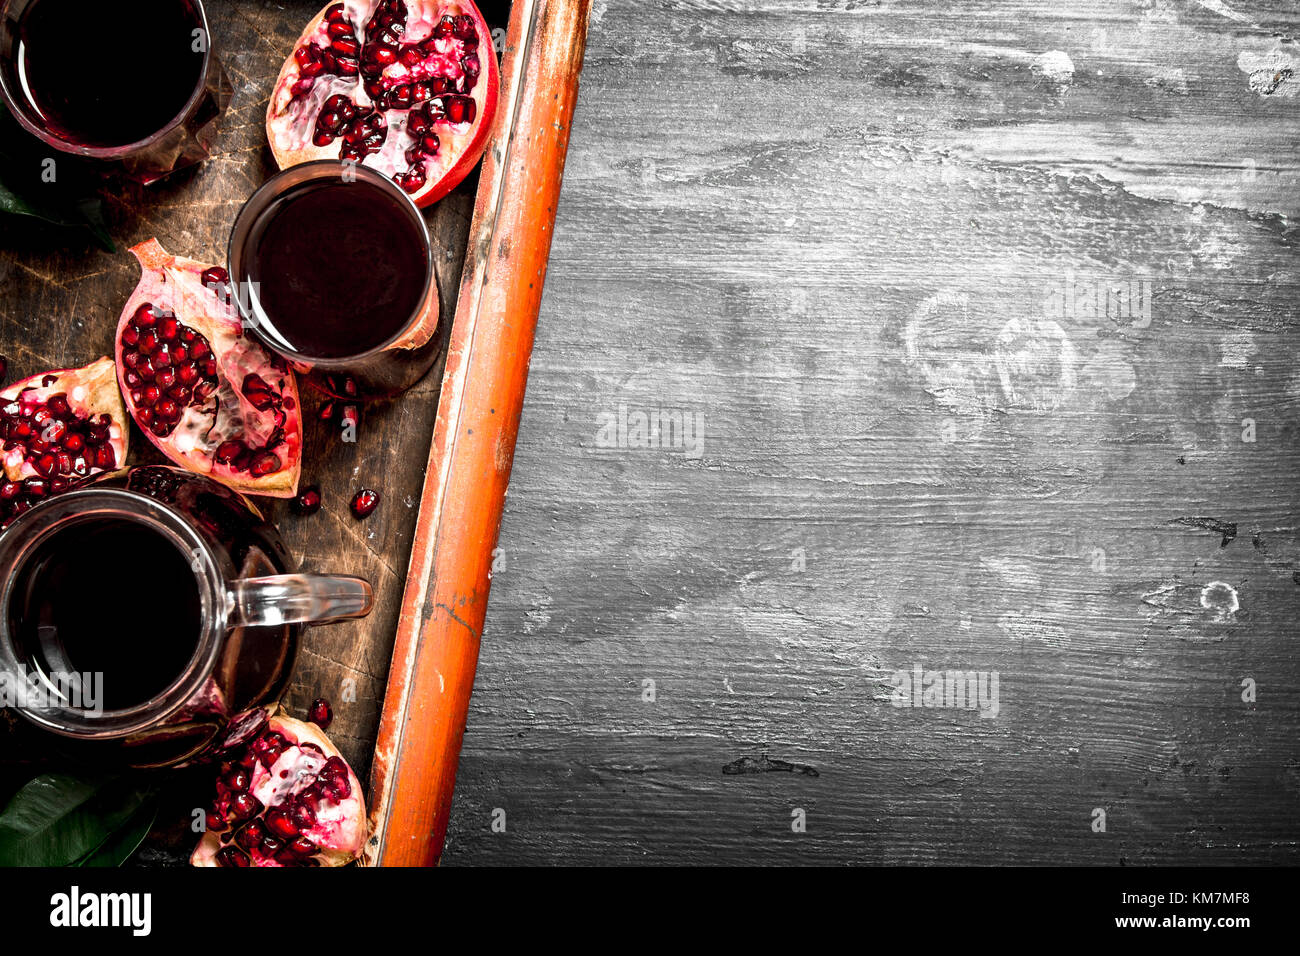 The fresh juice of ripe pomegranate. The black chalckboard. - Stock Image